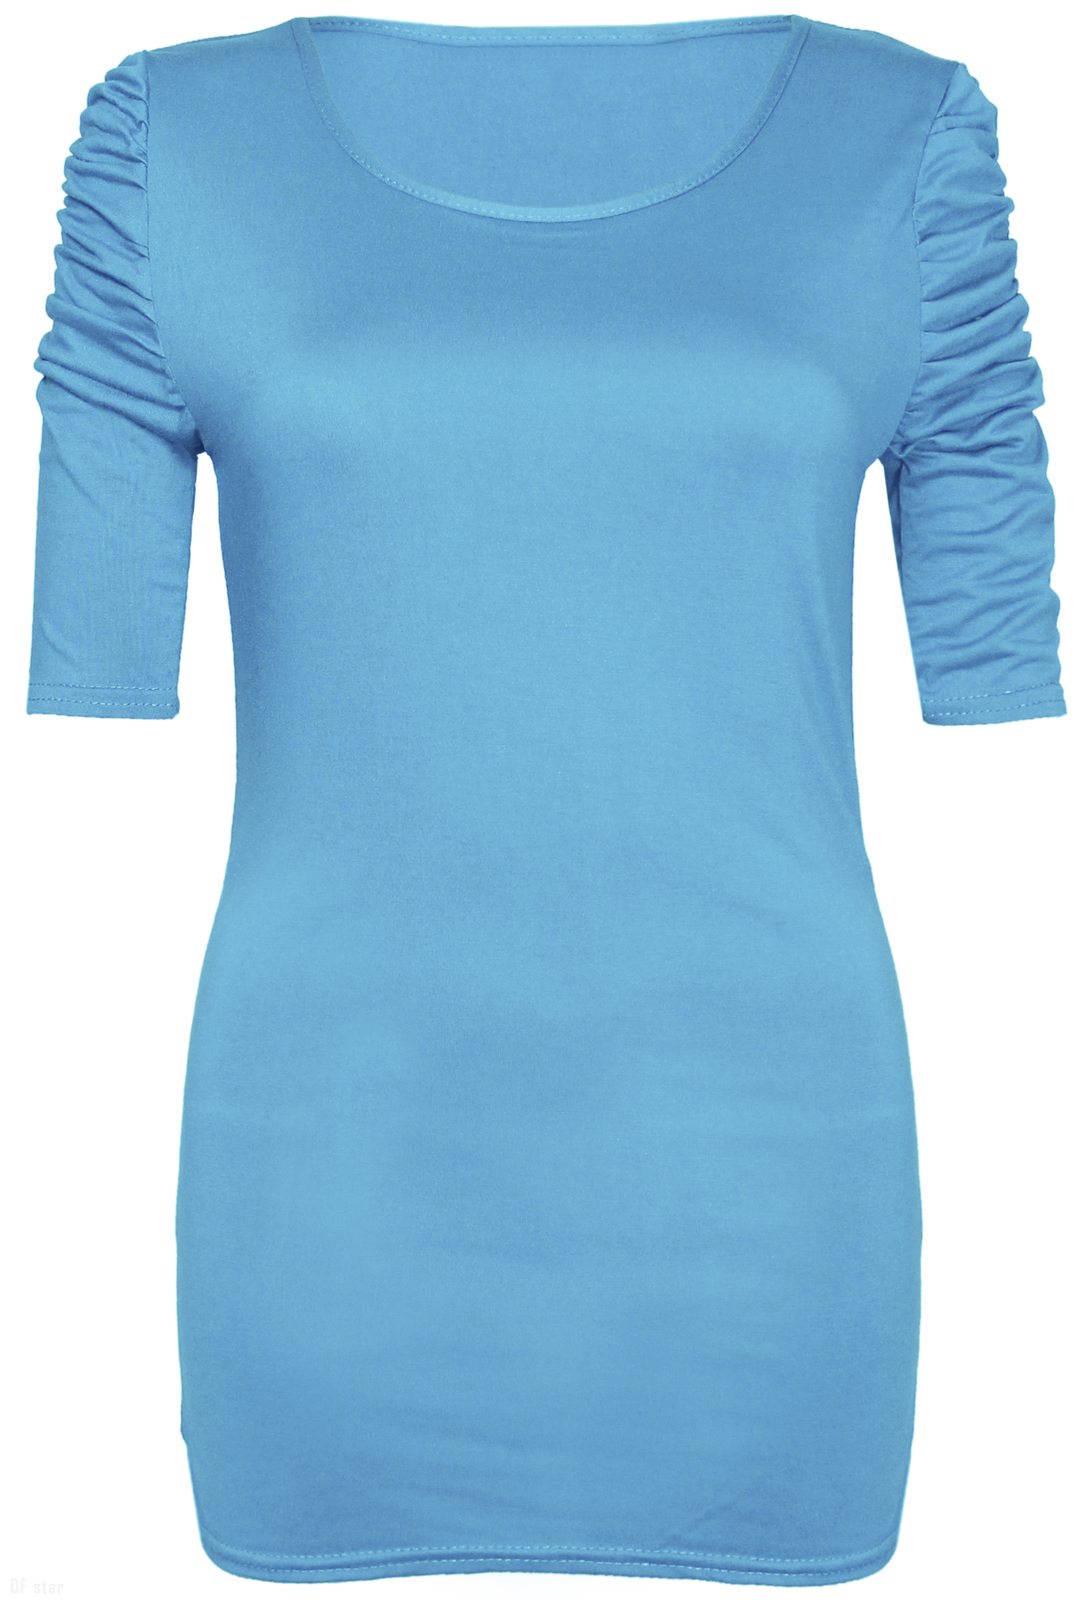 NEW-LADIES-RUCHED-SHORT-SLEEVE-WOMENS-LONG-STRETCH-TOP 縮圖 40